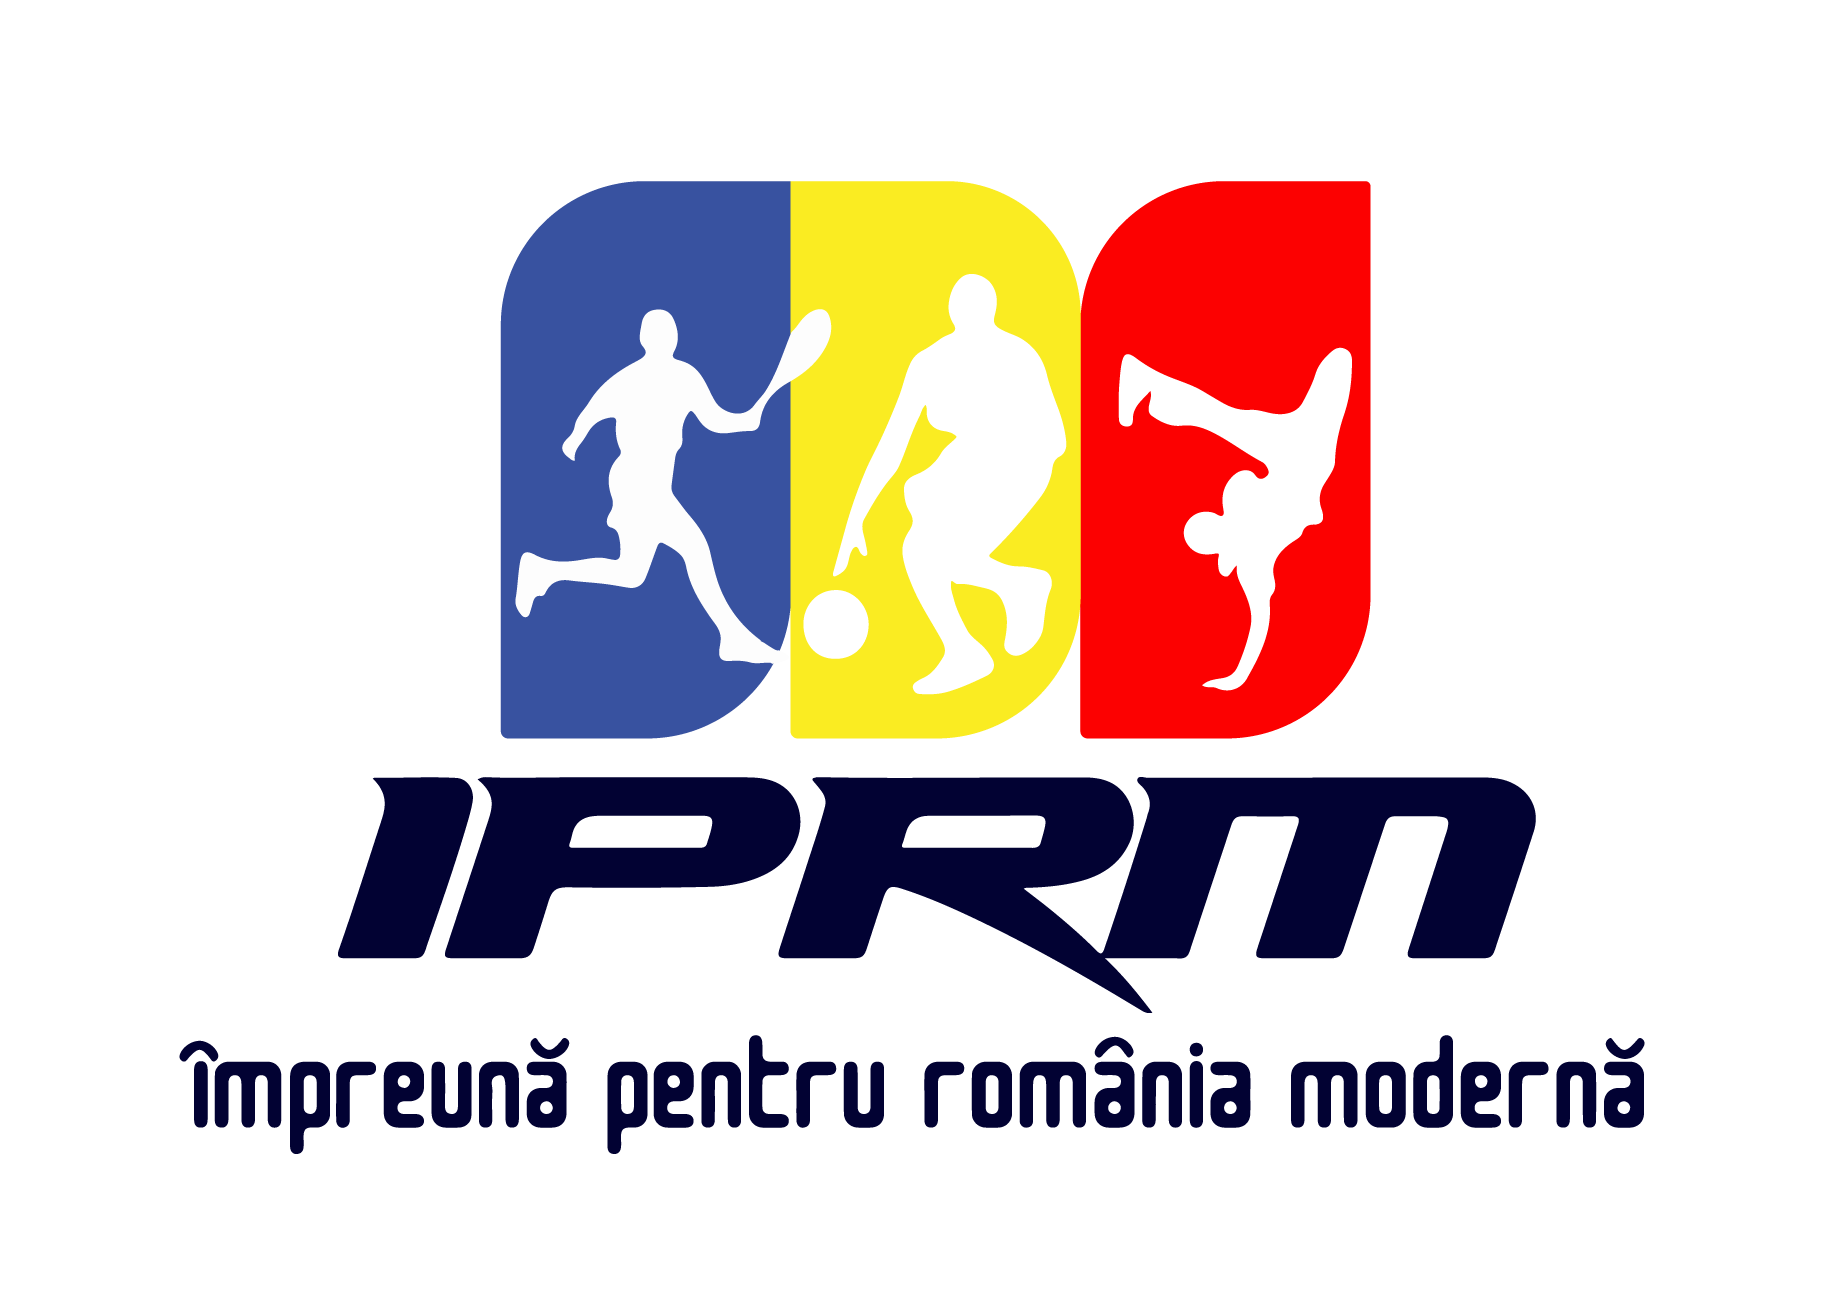 logo_iprm_color_fundal_transparent213q